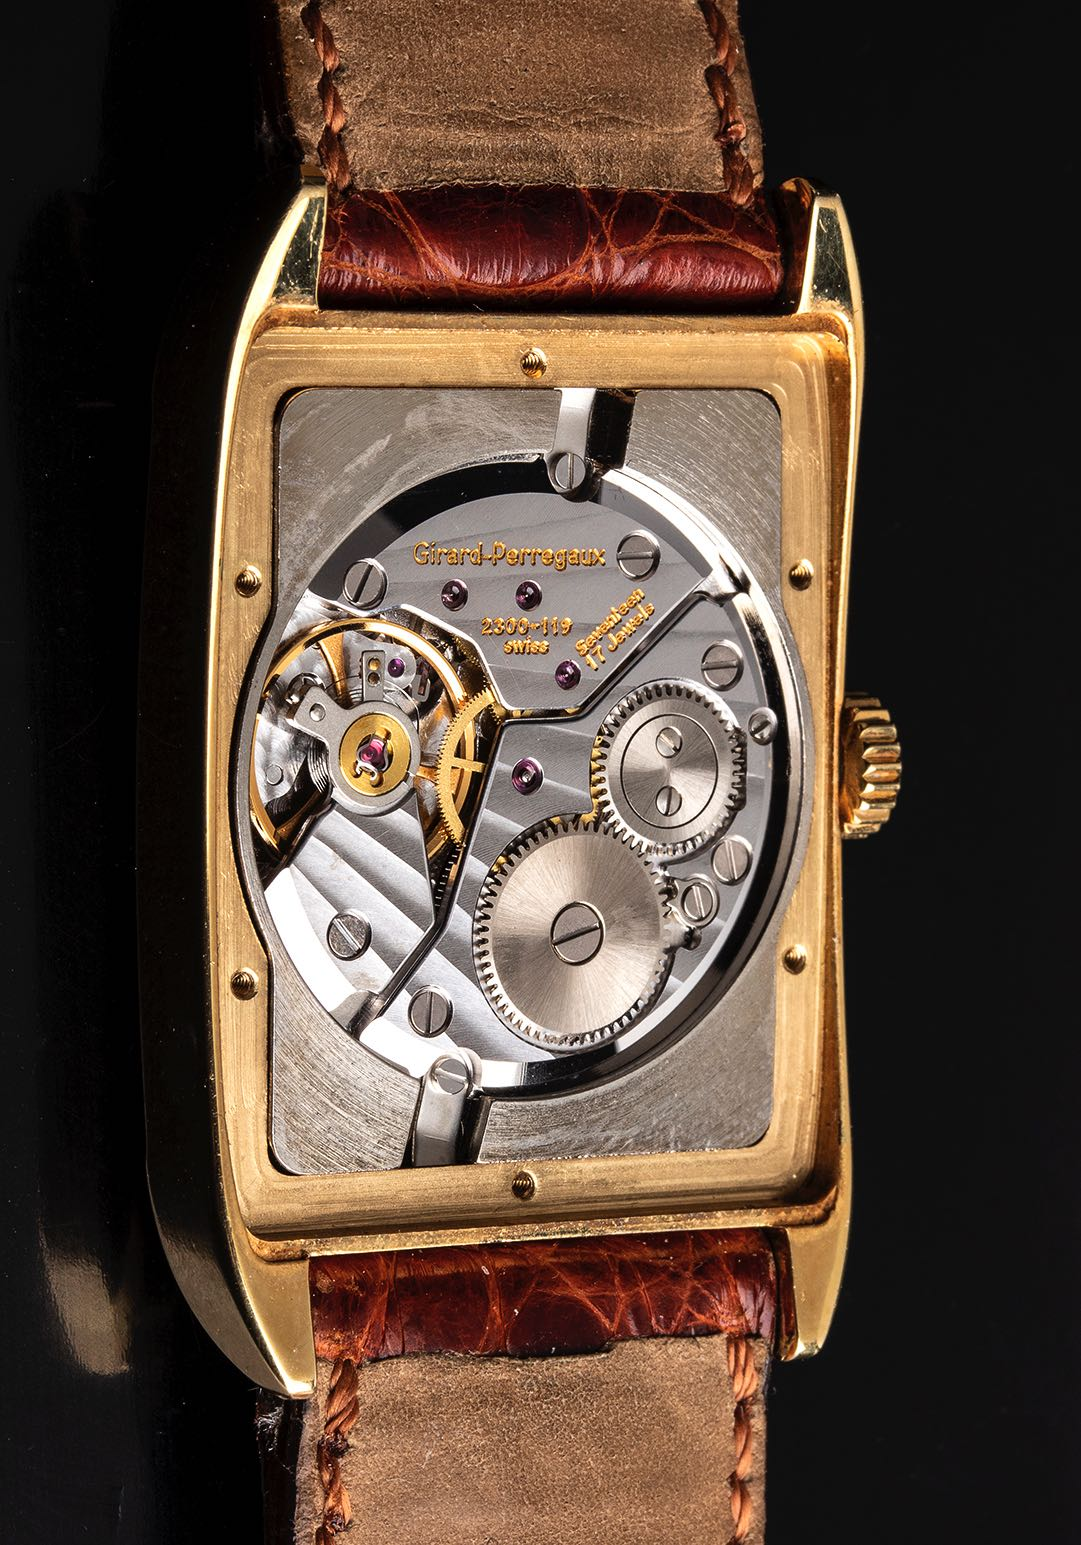 Girard Perregaux, 18 kt gold, 1791/1991 anniversary, Limited Edition, Ref.4961, Like N.O.S., full se - Image 2 of 4